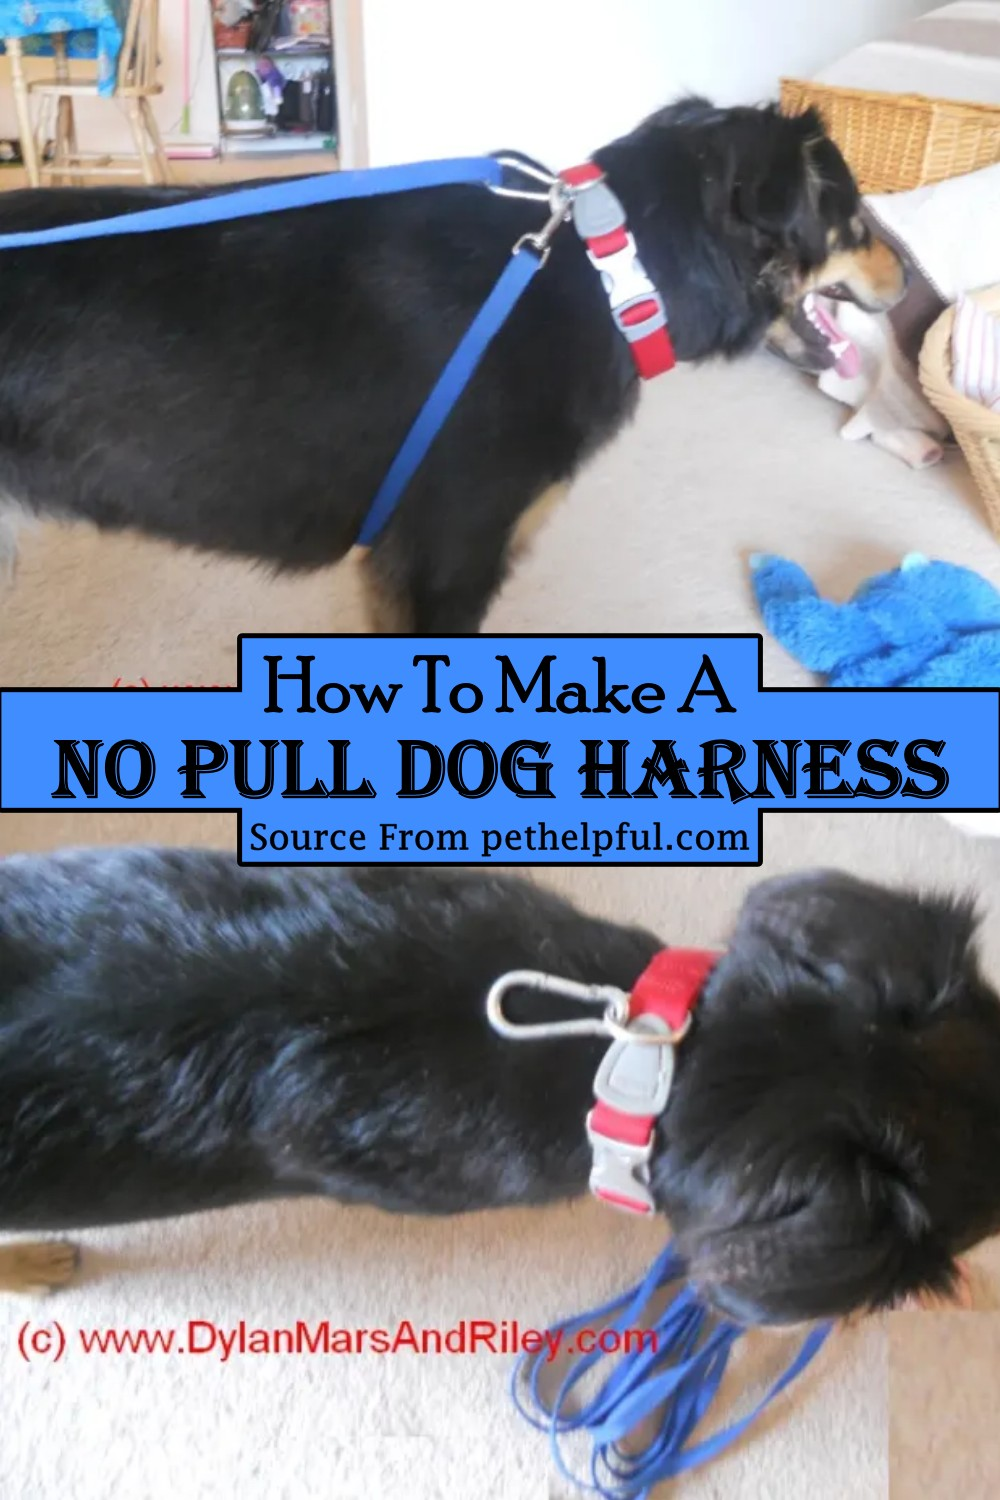 How To Make A No Pull Dog Harness